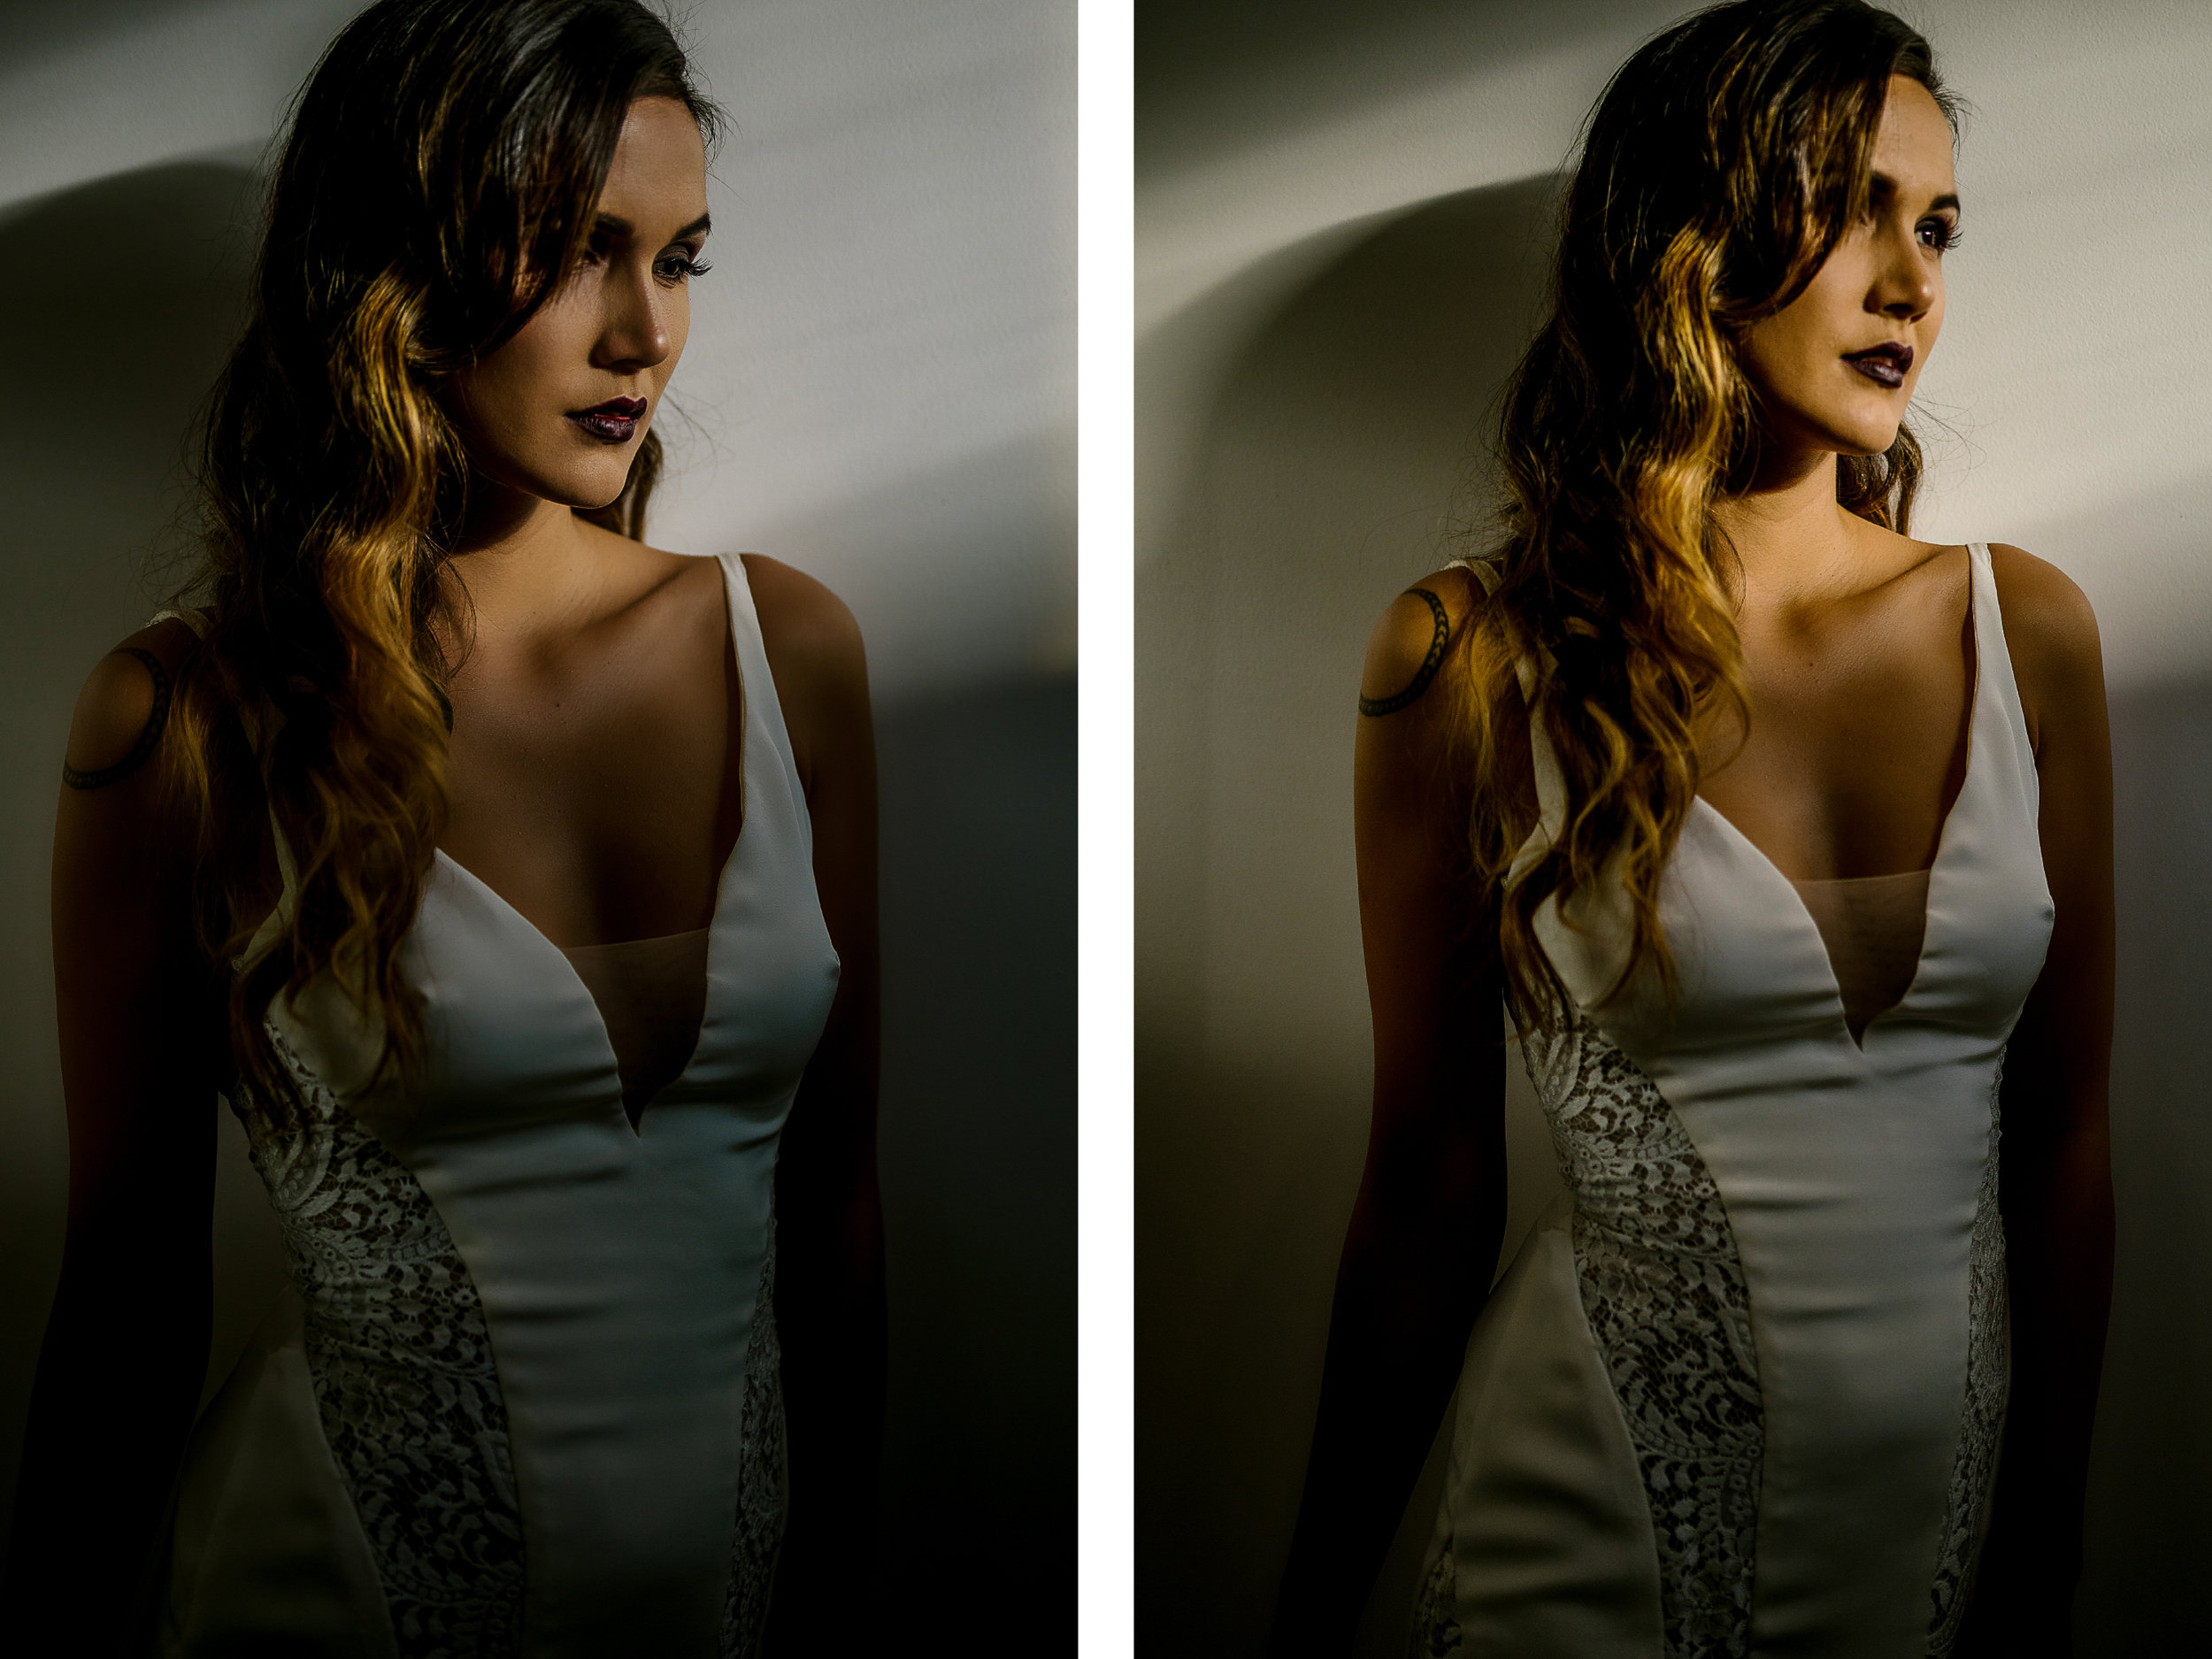 san diego wedding   photographer   collage of woman in wedding dress looking outside illuminated   by sunrays